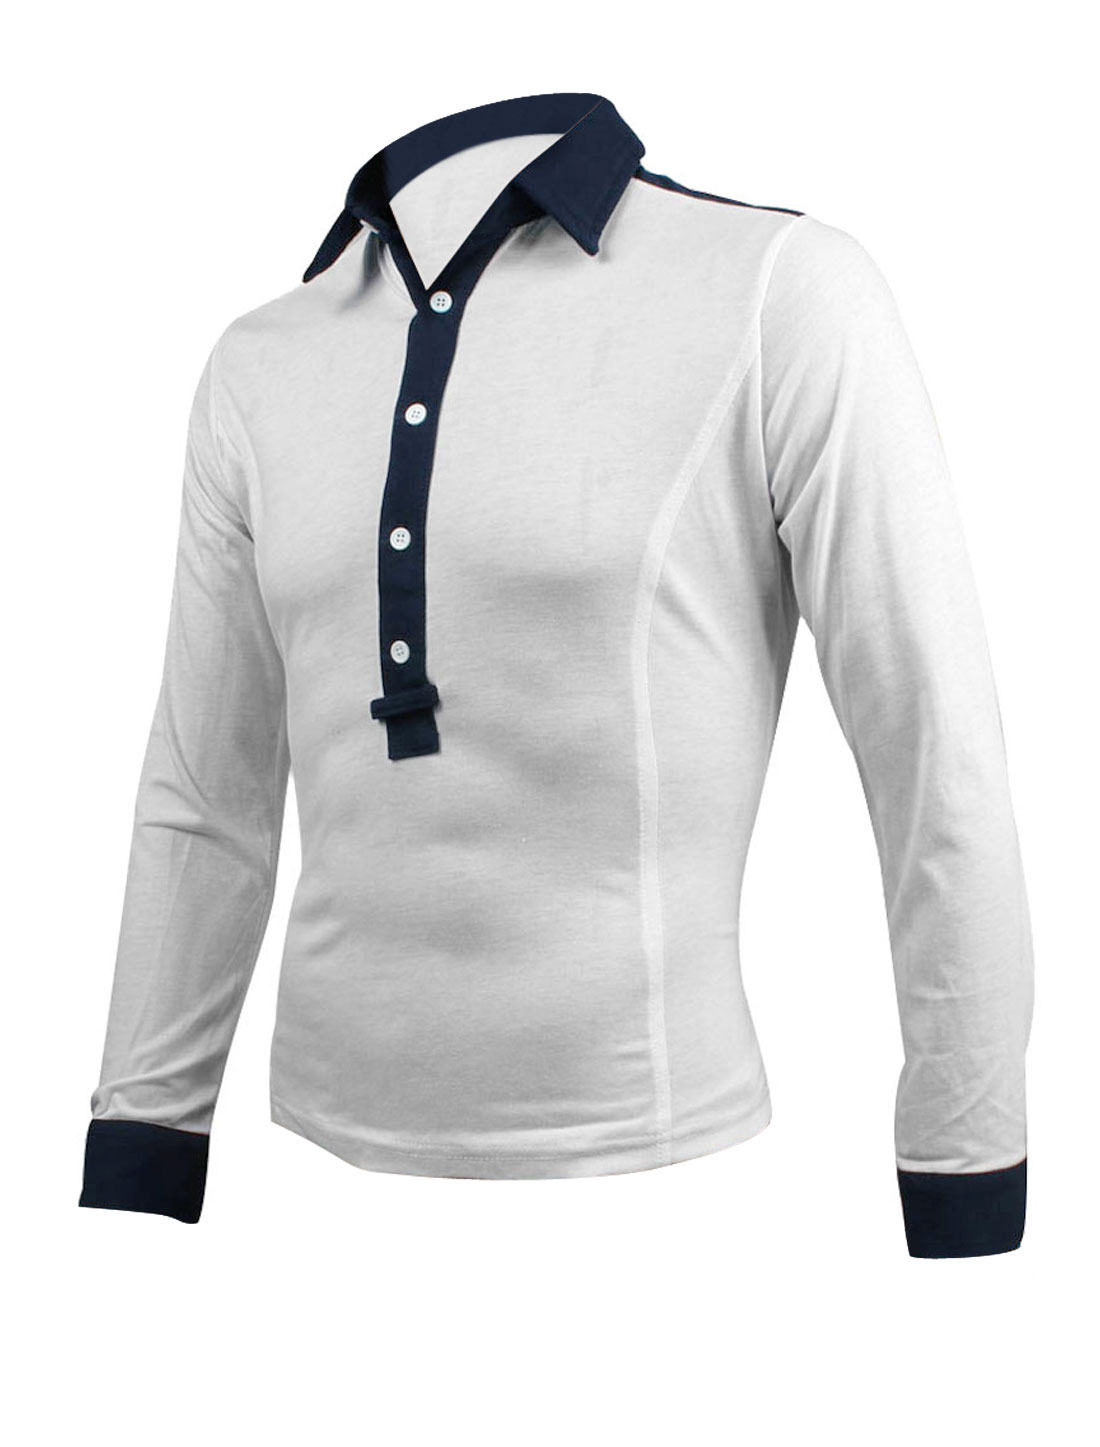 Men Point Collar 1/2 Placket Button Cuffs White Casual Polo Shirt M